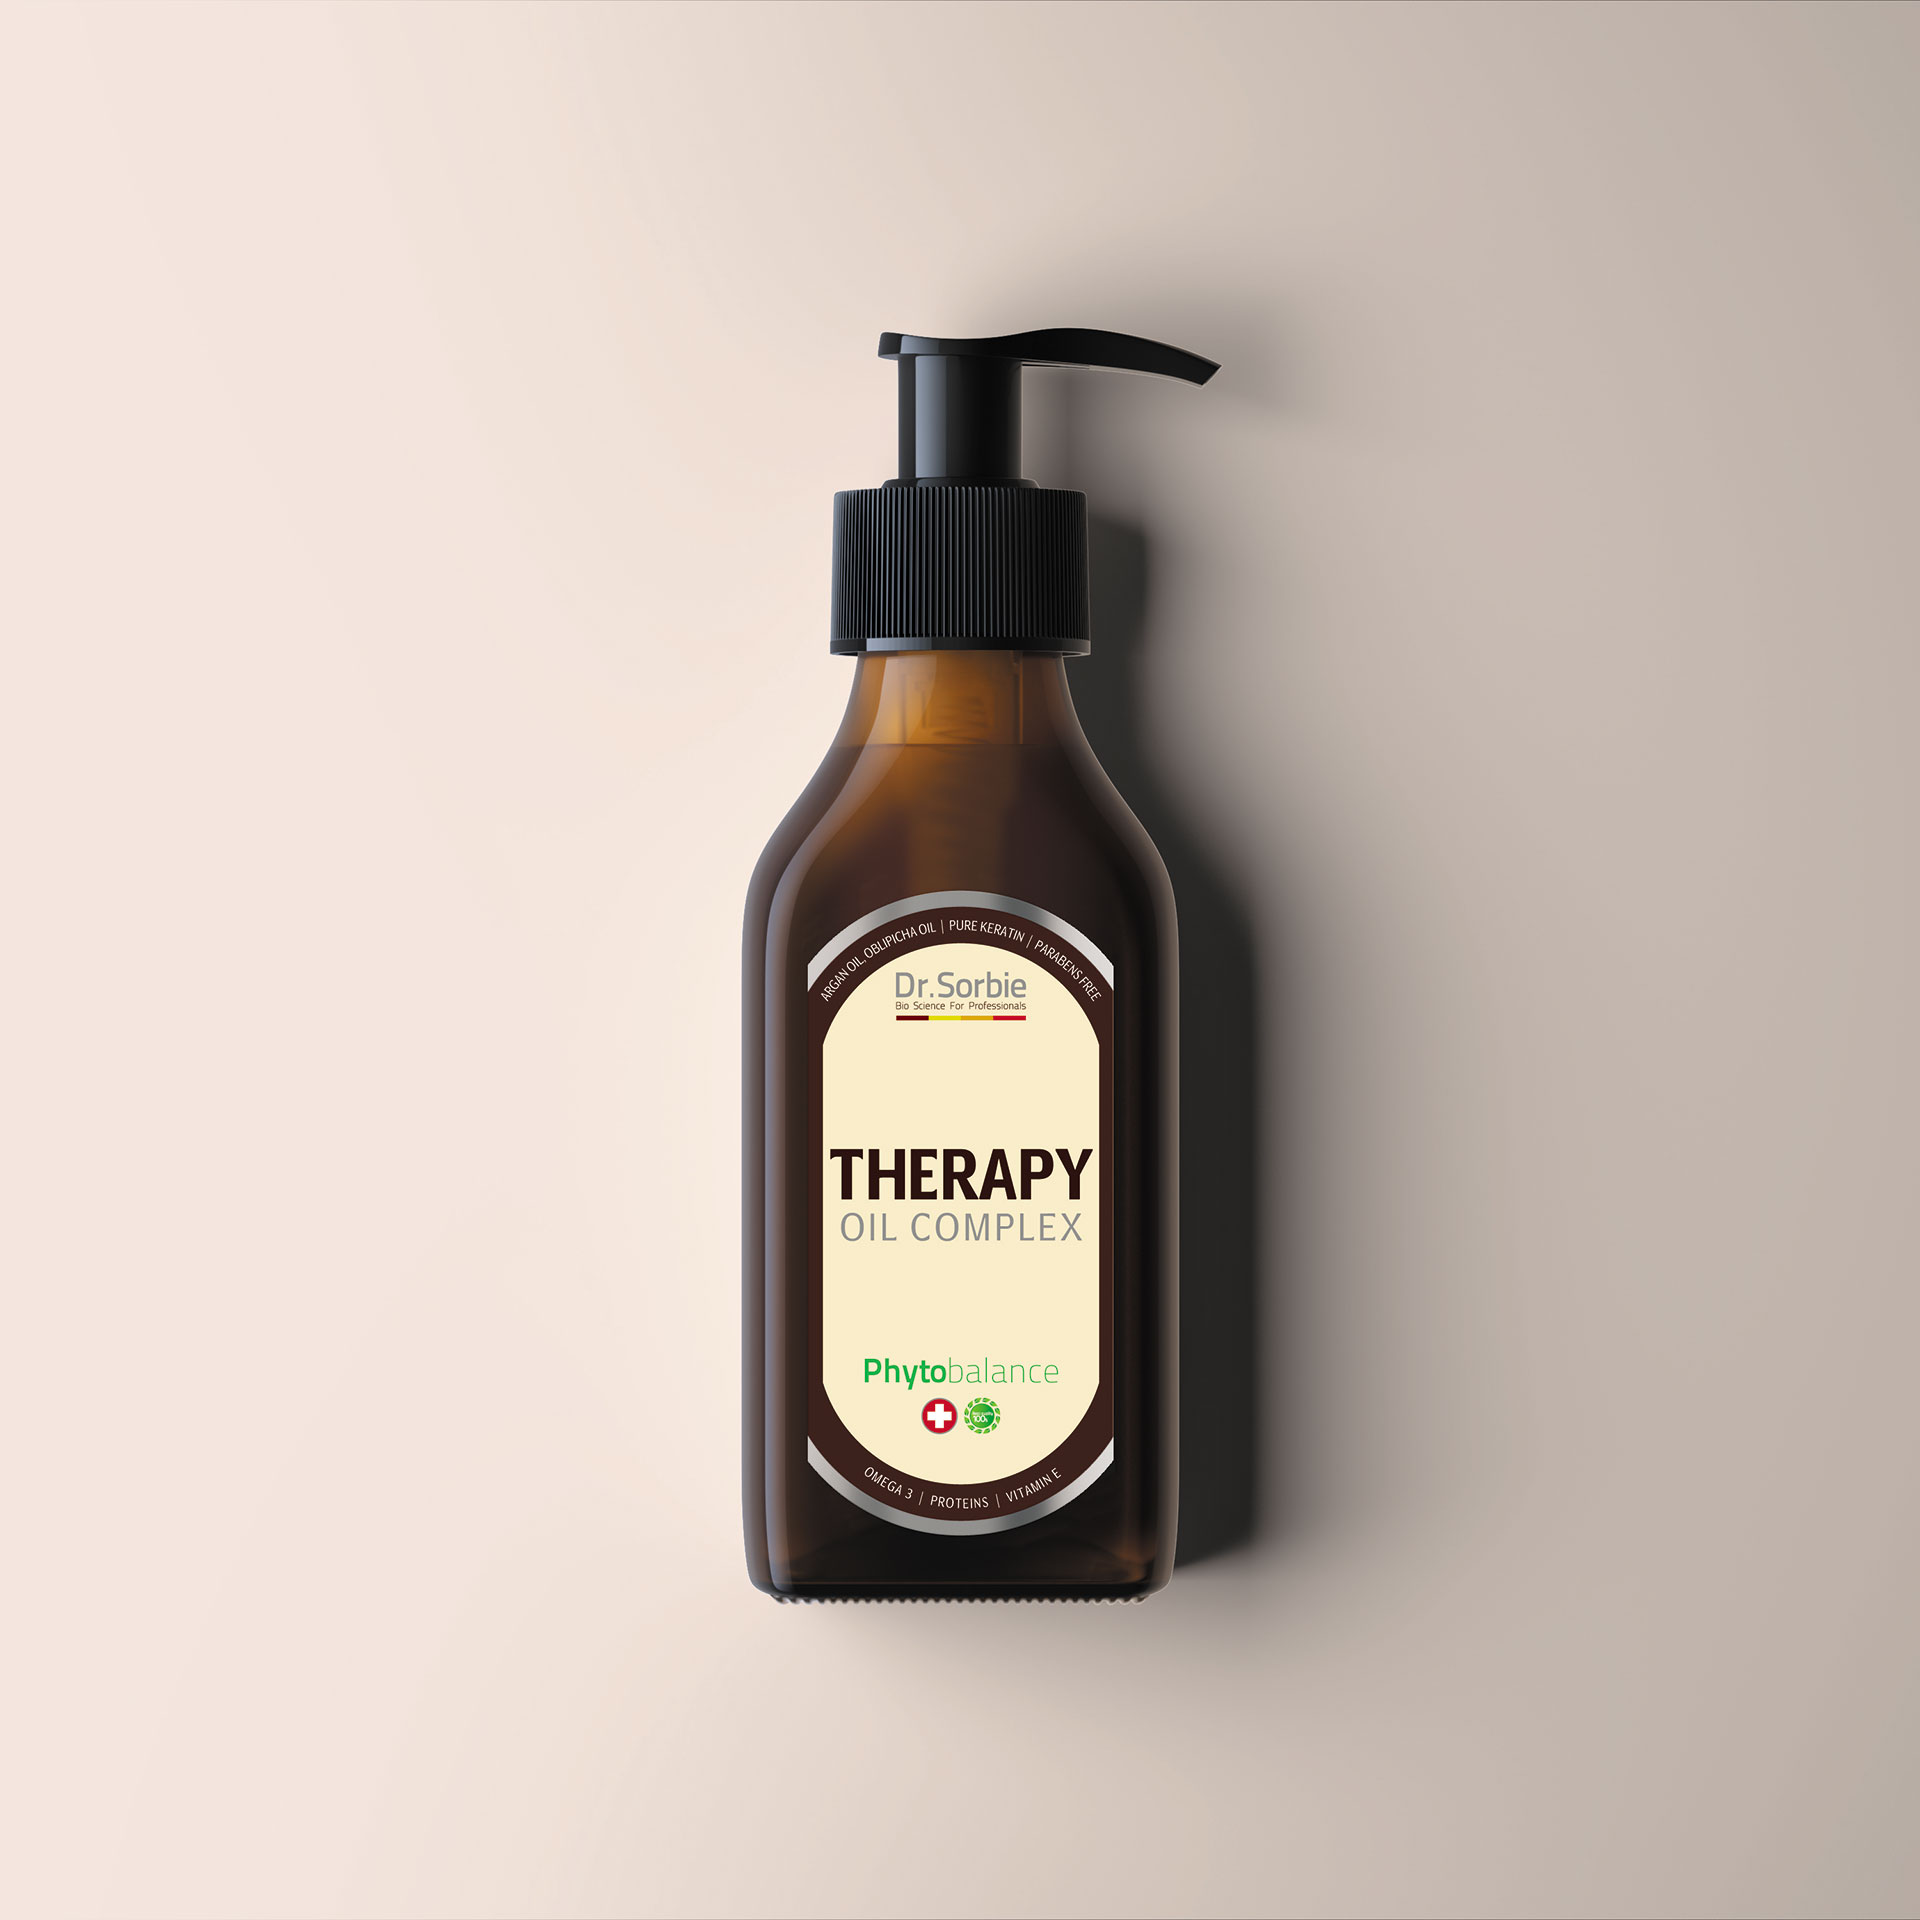 Therapy Oil Complex by Dr. Sorbie